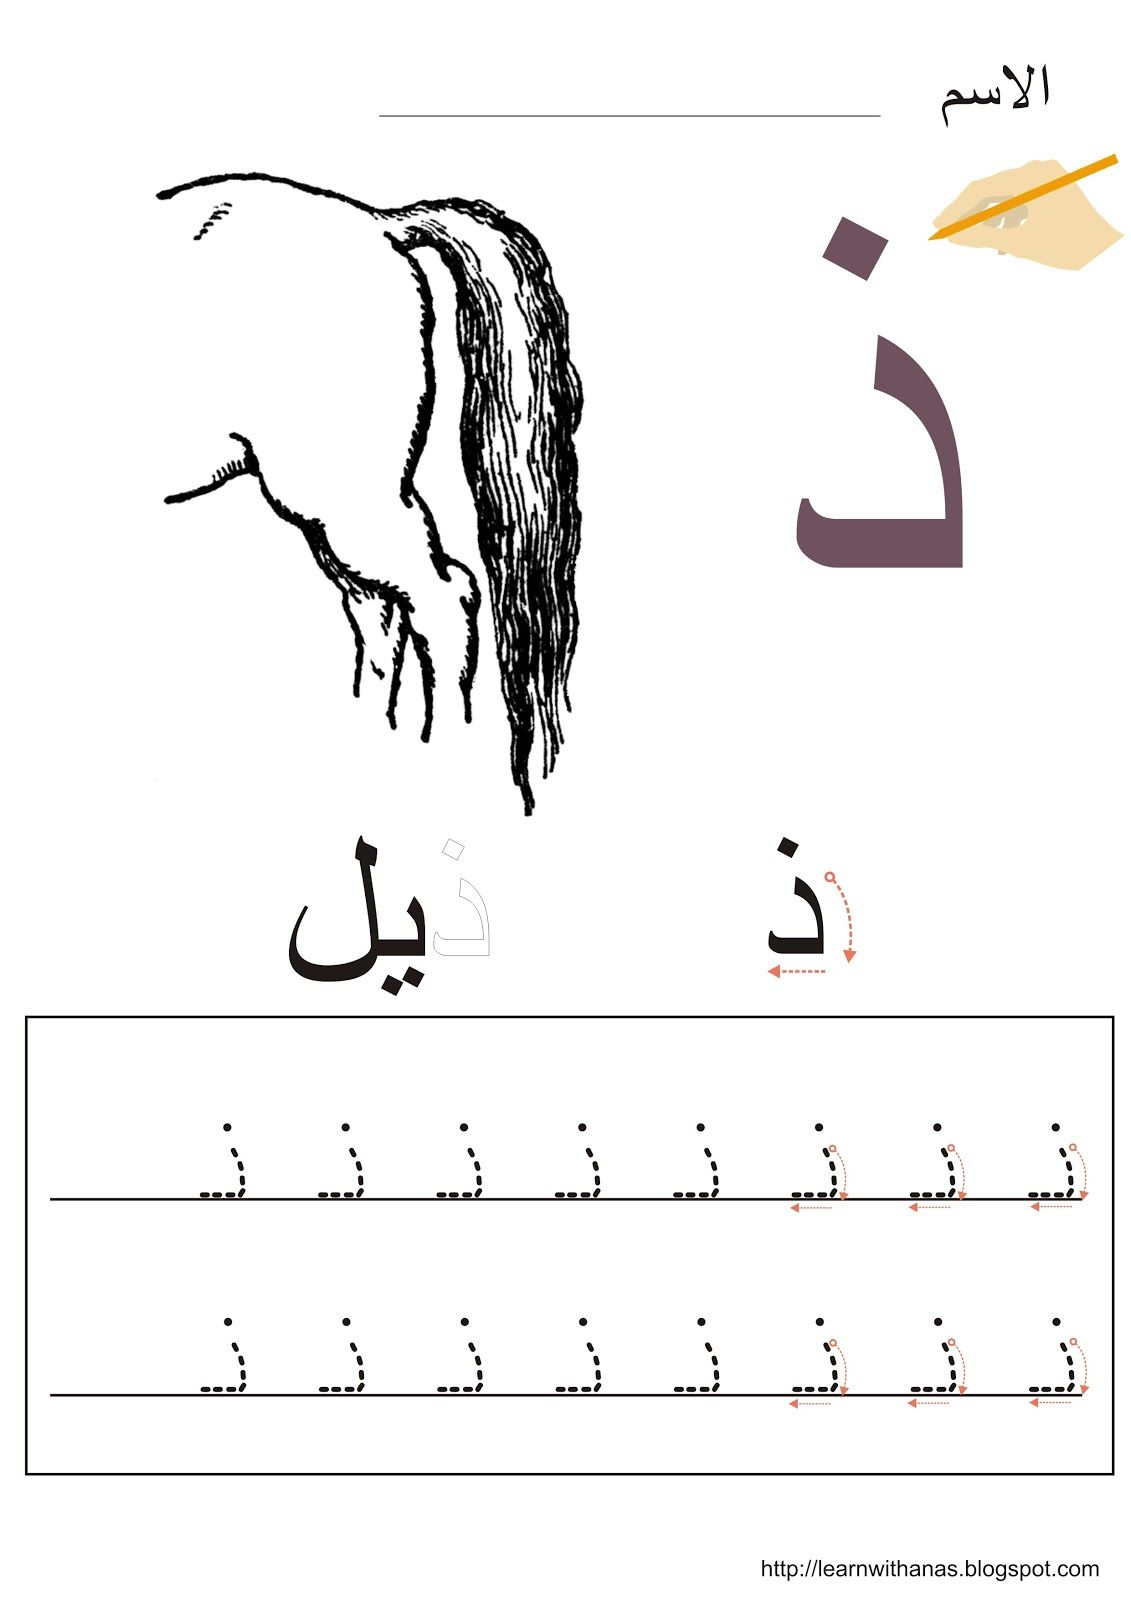 حرف الذال Yahoo Search Results Yahoo Image Search Results Learn Arabic Alphabet Arabic Alphabet Arabic Alphabet For Kids